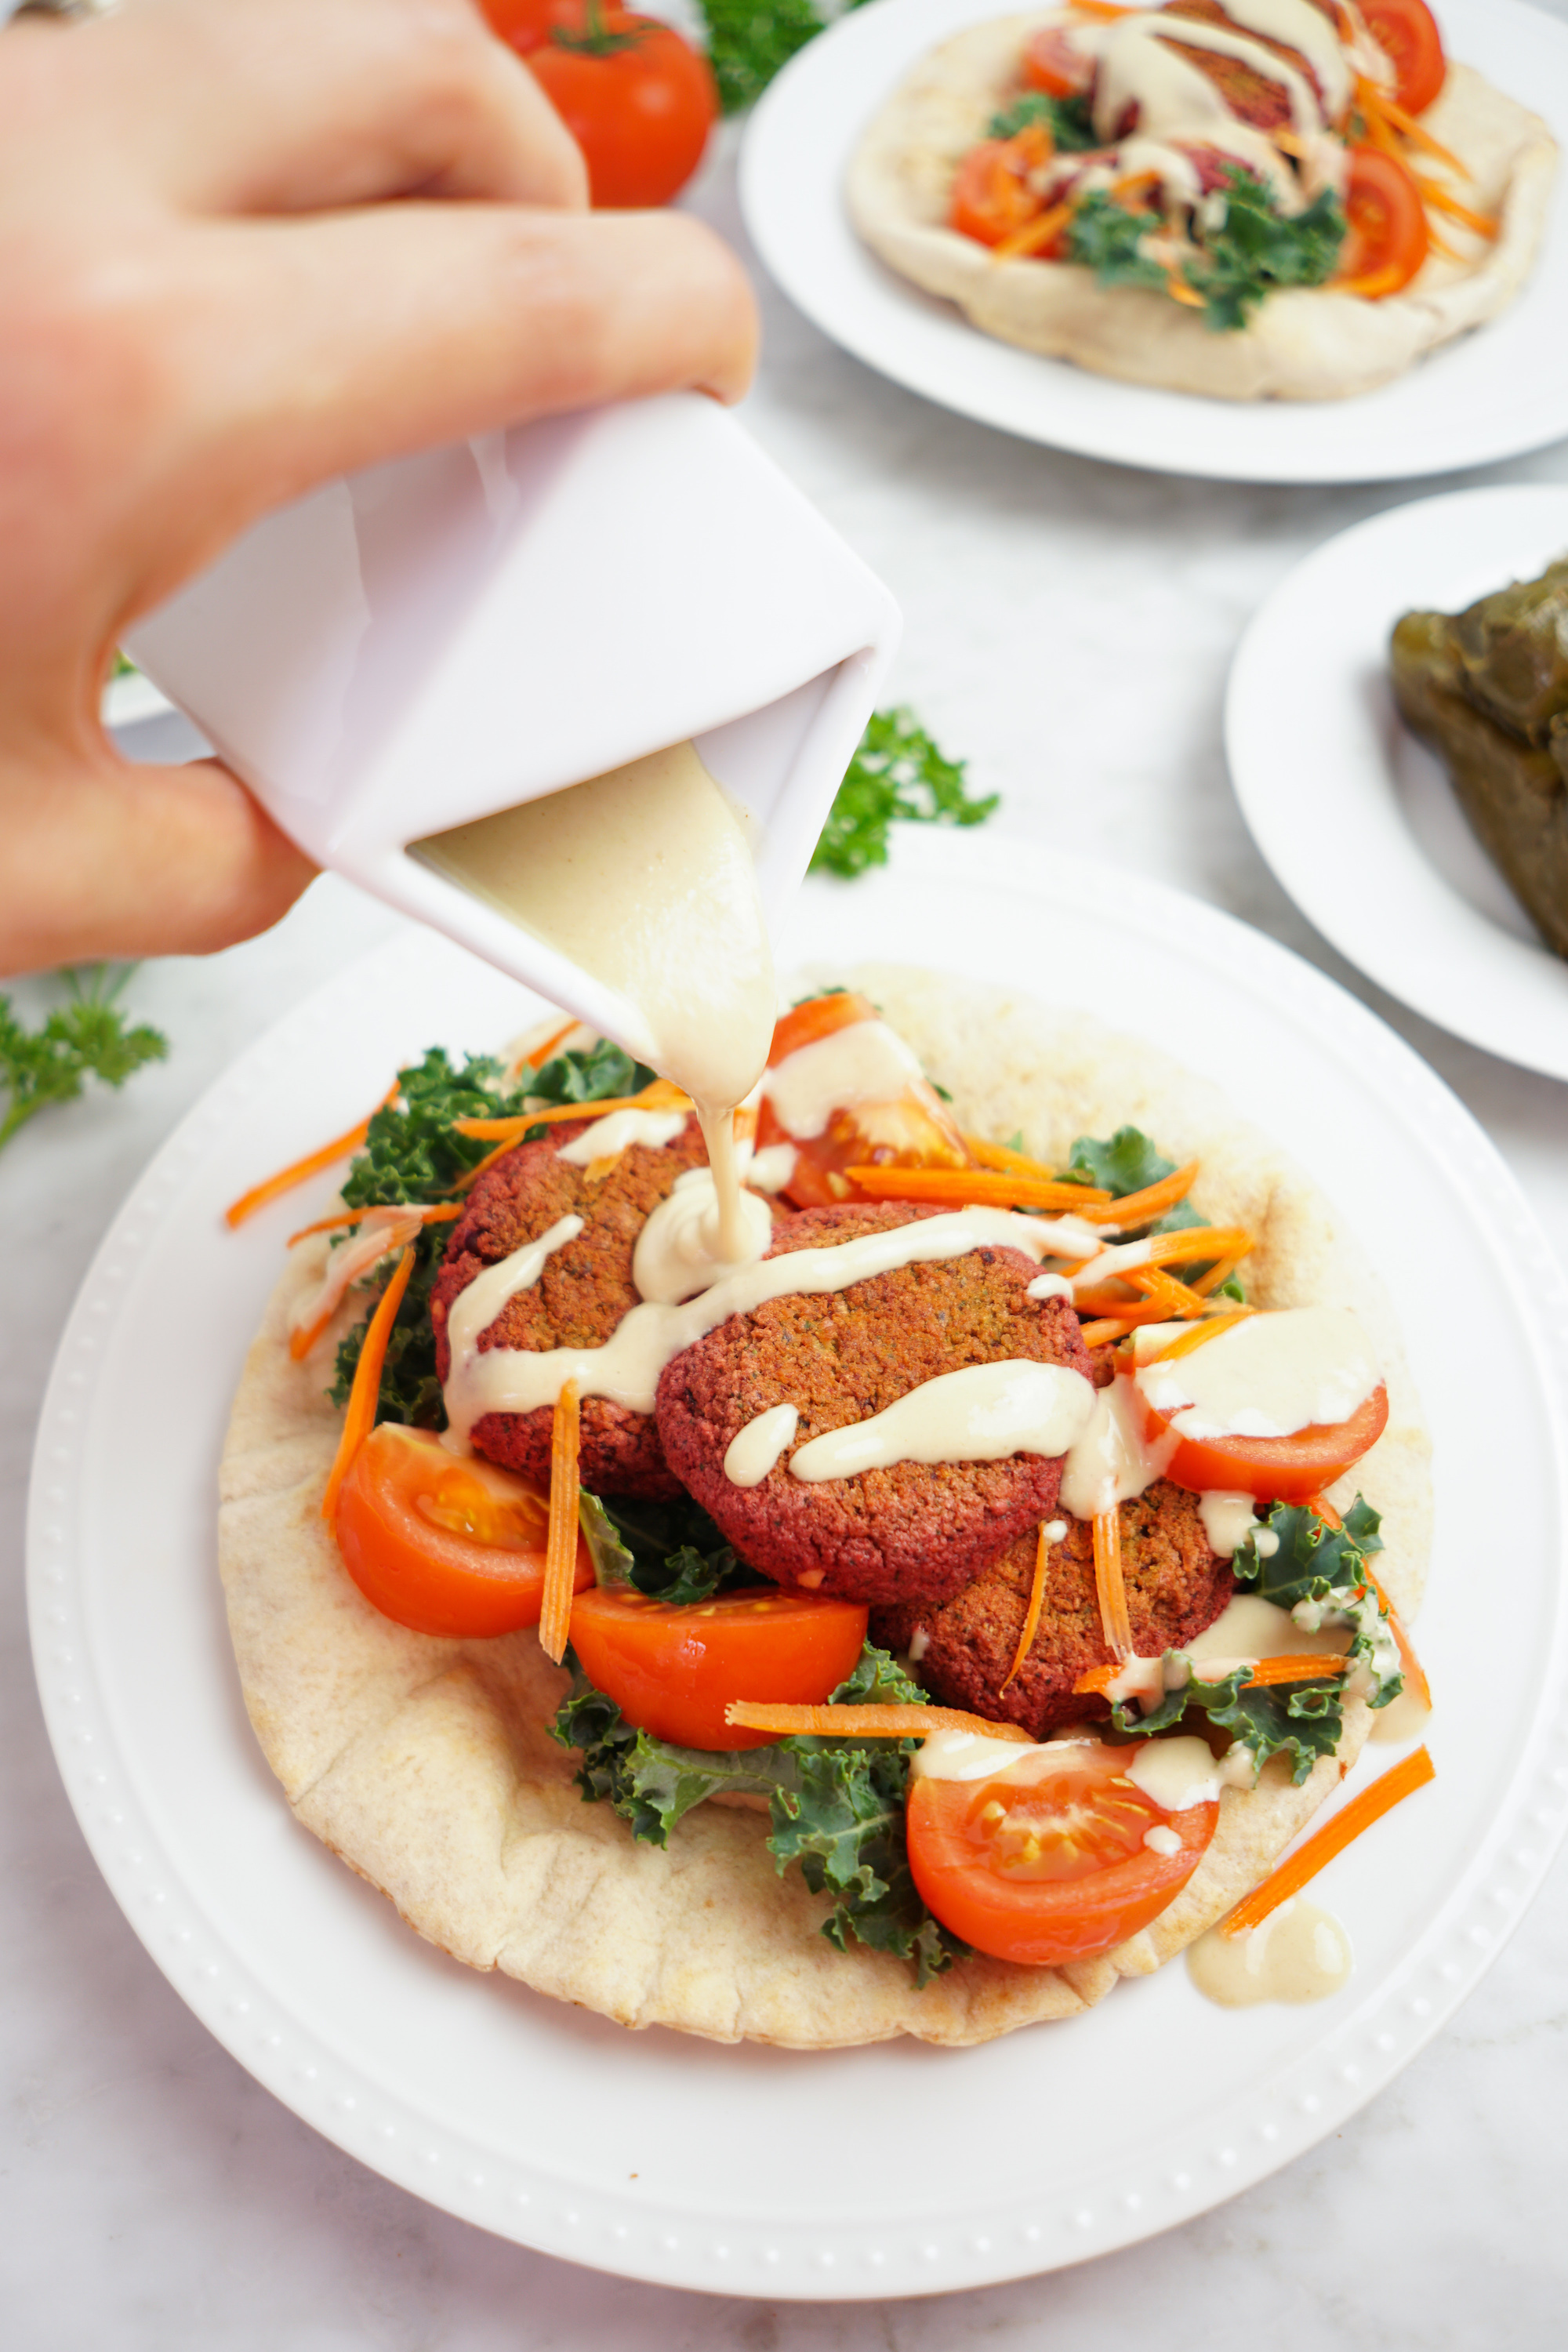 Baked Red Lentil Falafels with Lemon Tahini Sauce